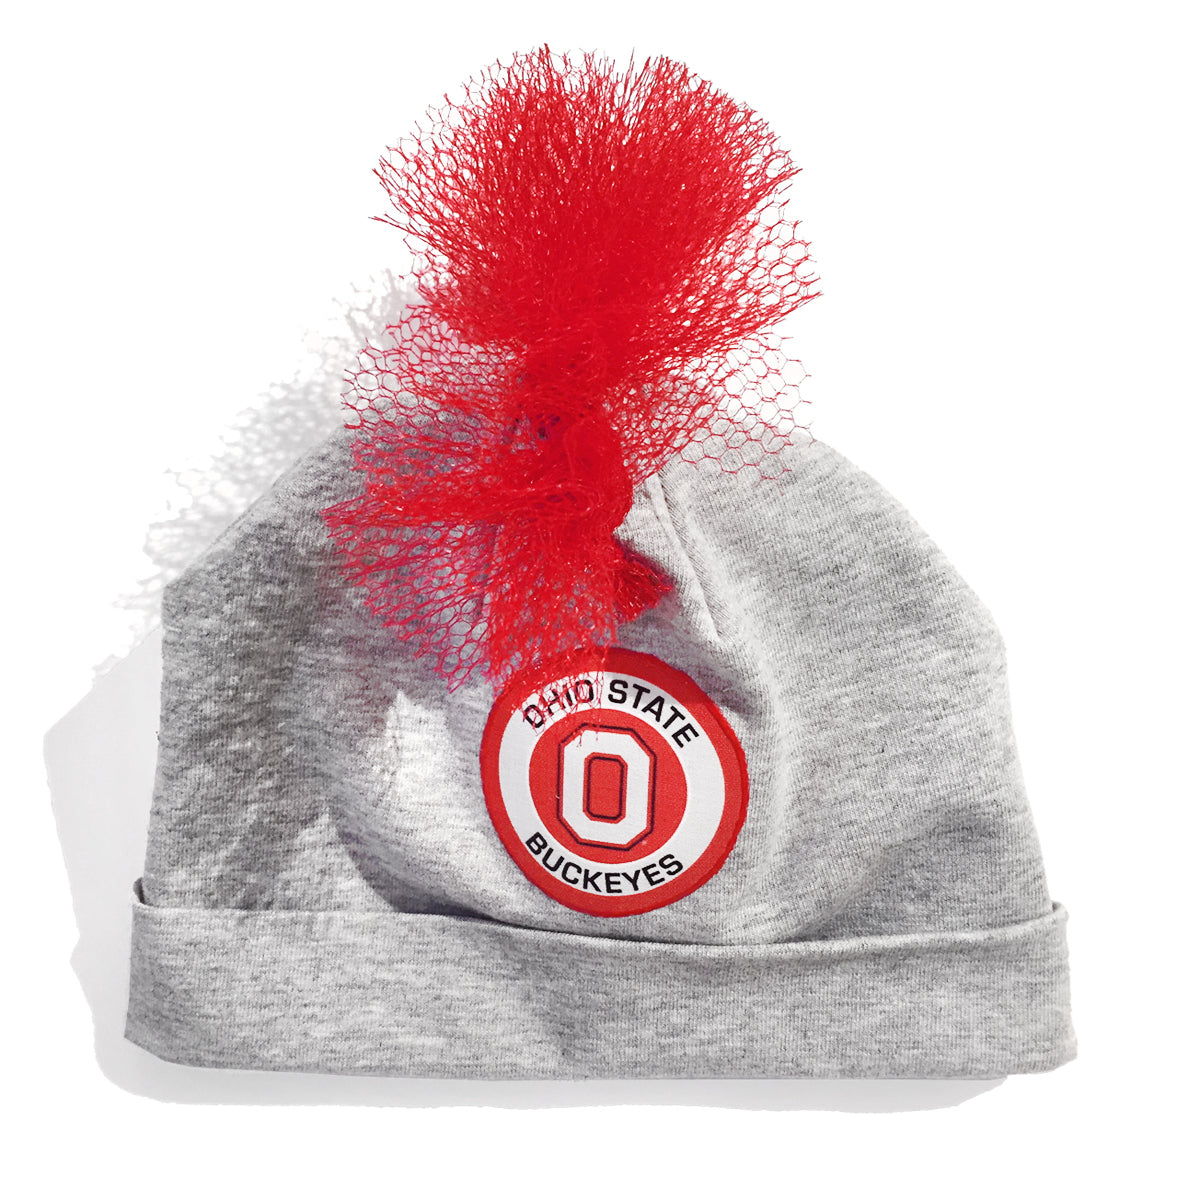 4a77a2d8562 OSU Ohio State University Football Team Grey Red Mohawk Beanie Hat Baby Boy  Tadpoles   Tiddlers